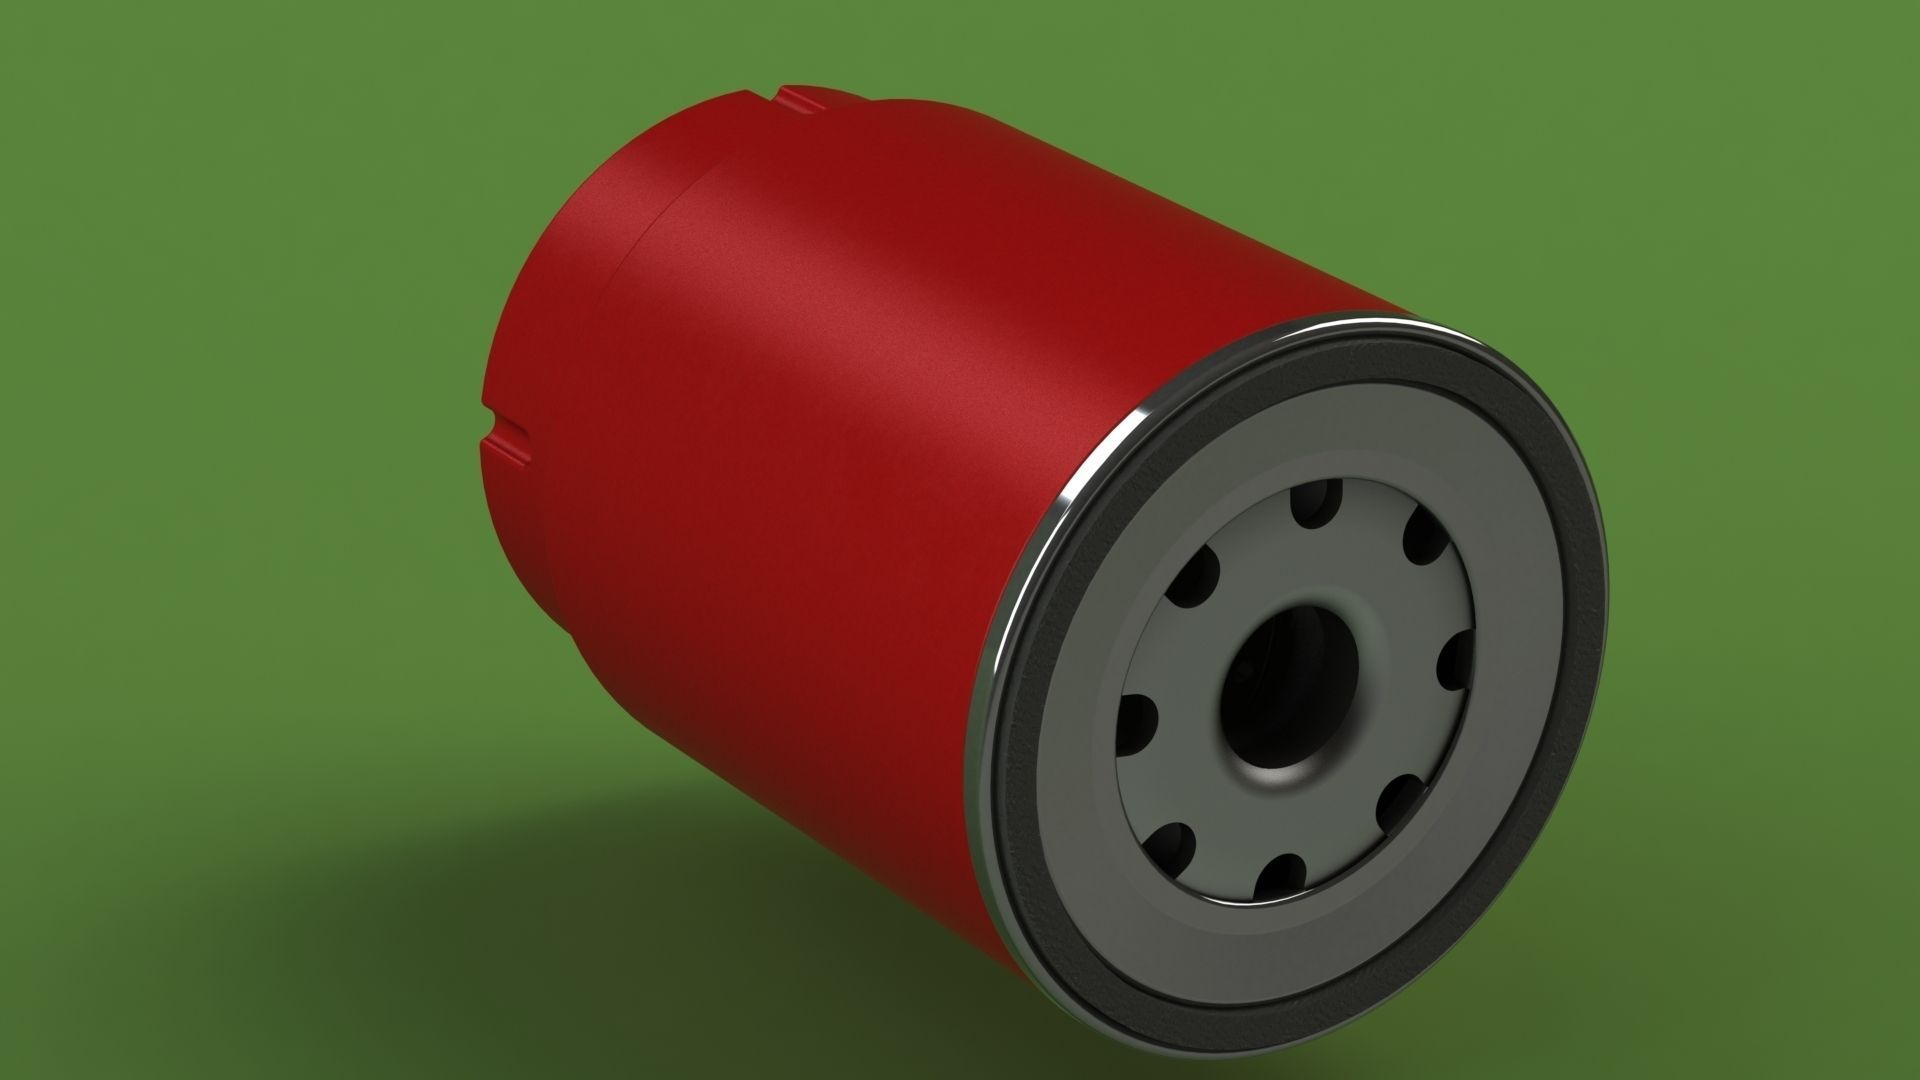 hight resolution of  mann pl270 disel fuel filter 3d model sldprt sldasm slddrw 2